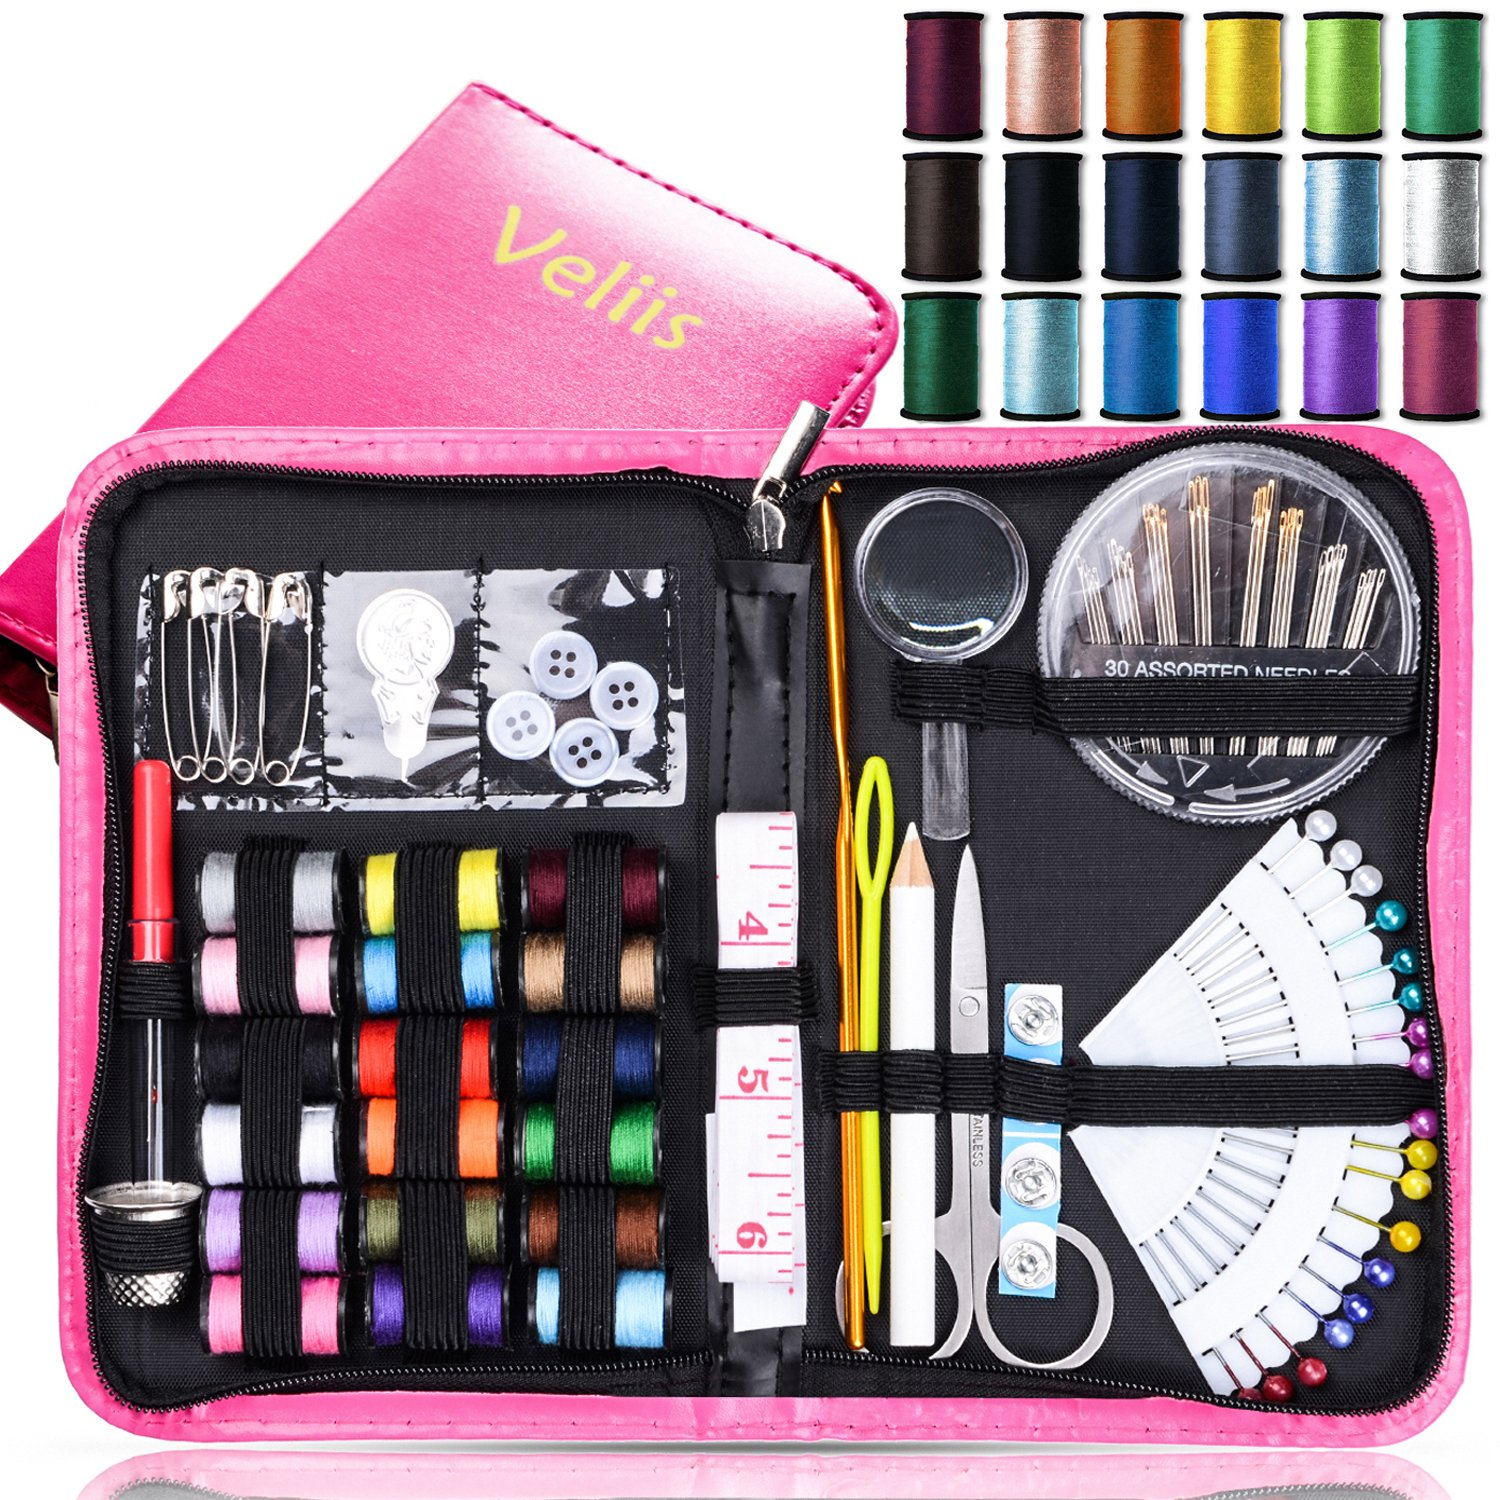 Needle and Thread Sewing Kit for Home, Travel, Camping & Emergency. Best Gift for Mother,Grandmas, Kids, Girls, Beginners & Adults. Quality Premium Sew Supplies Set 4337008688